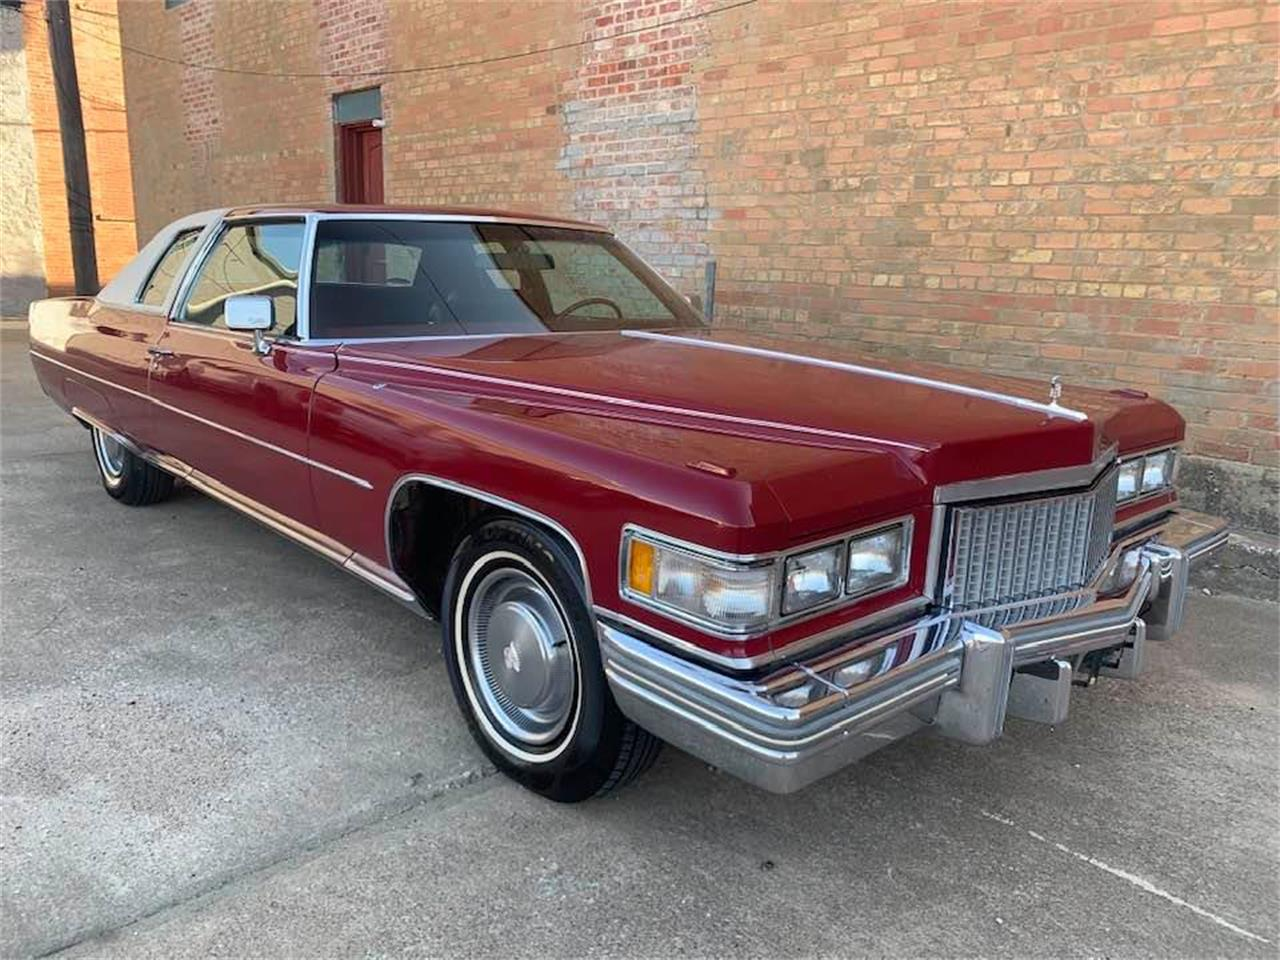 1975 Cadillac Coupe DeVille (CC-1413794) for sale in Denison, Texas